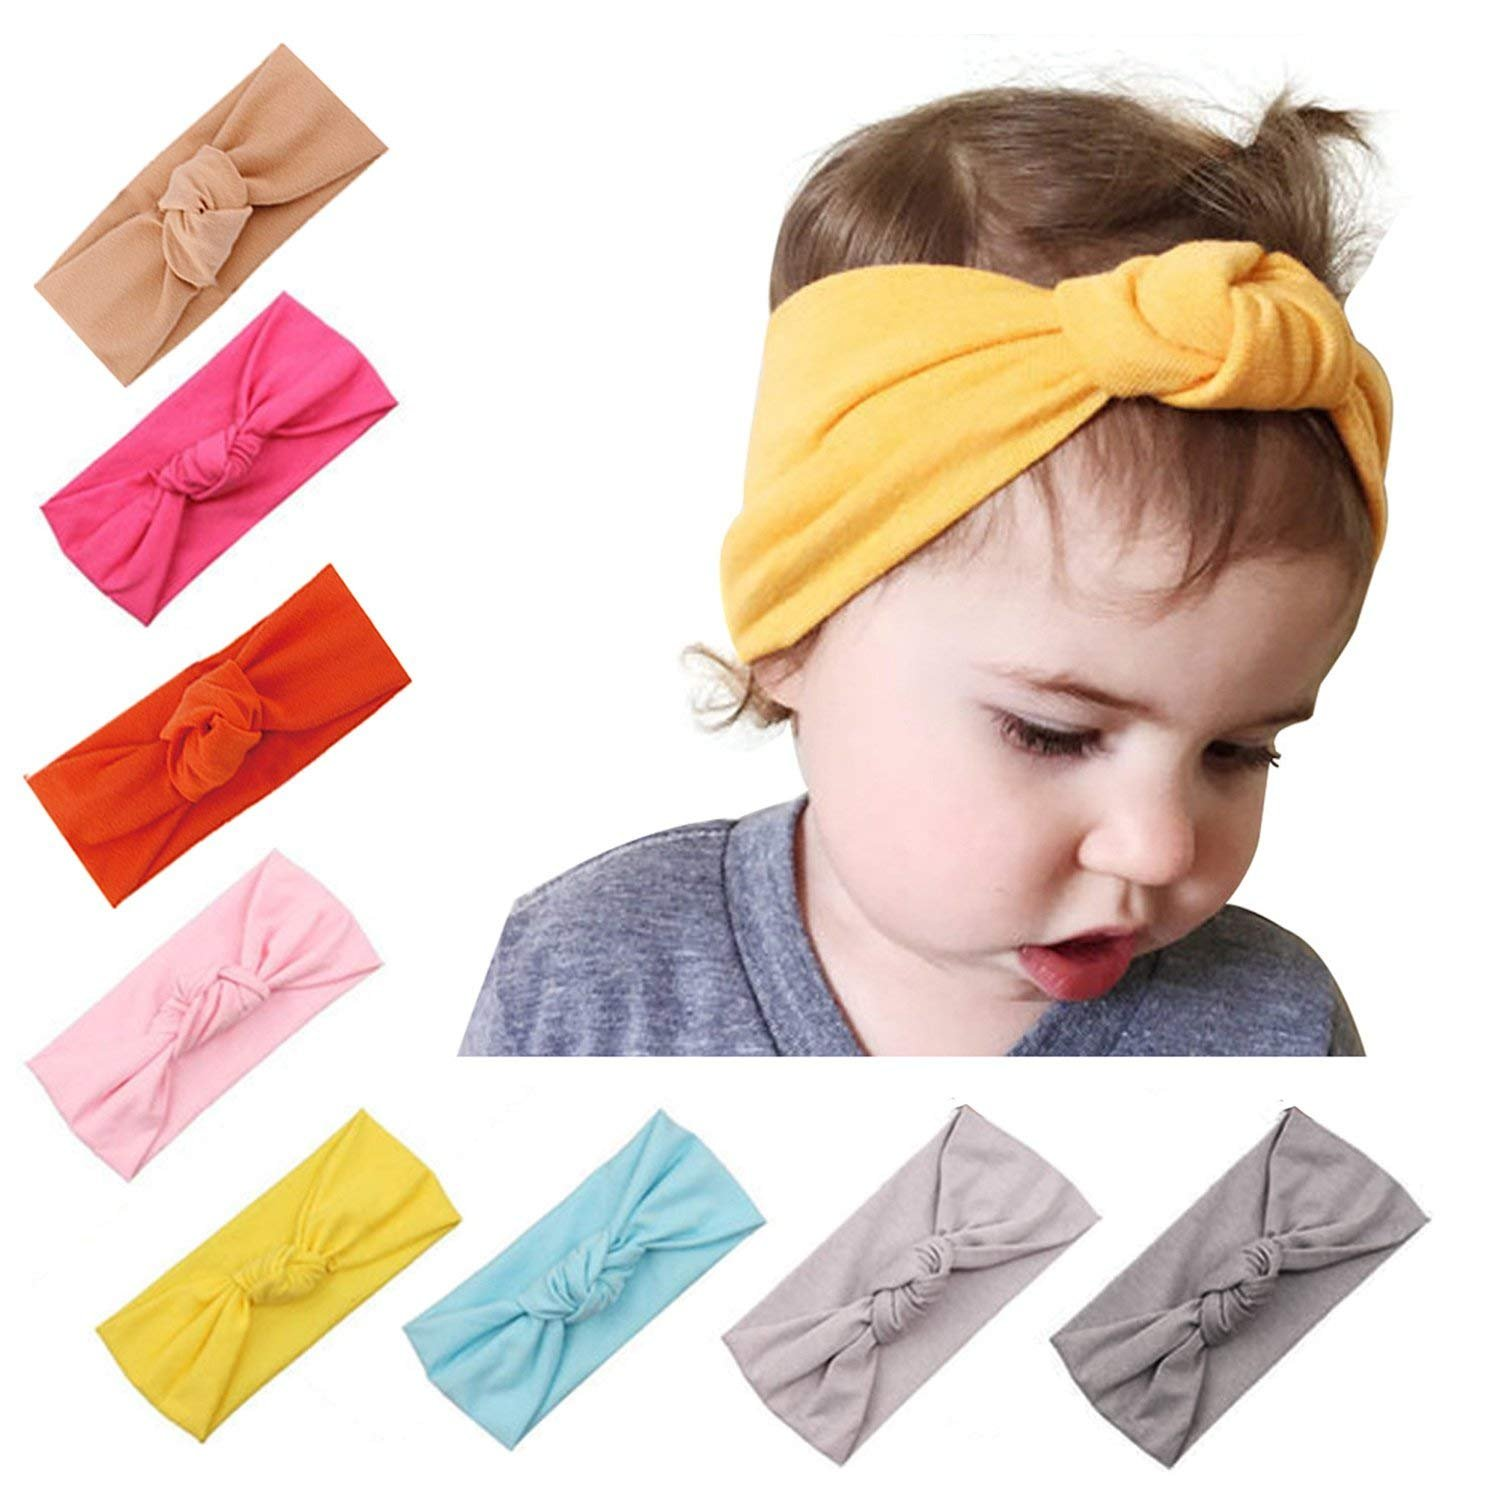 Have An Inquiring Mind 5 Pack Bowknot Baby Girls Kids Hair Clips Pin Bows Headwear Hairpin Accessories For Children Hair Ornaments Hairclip Headdress Hair Accessories